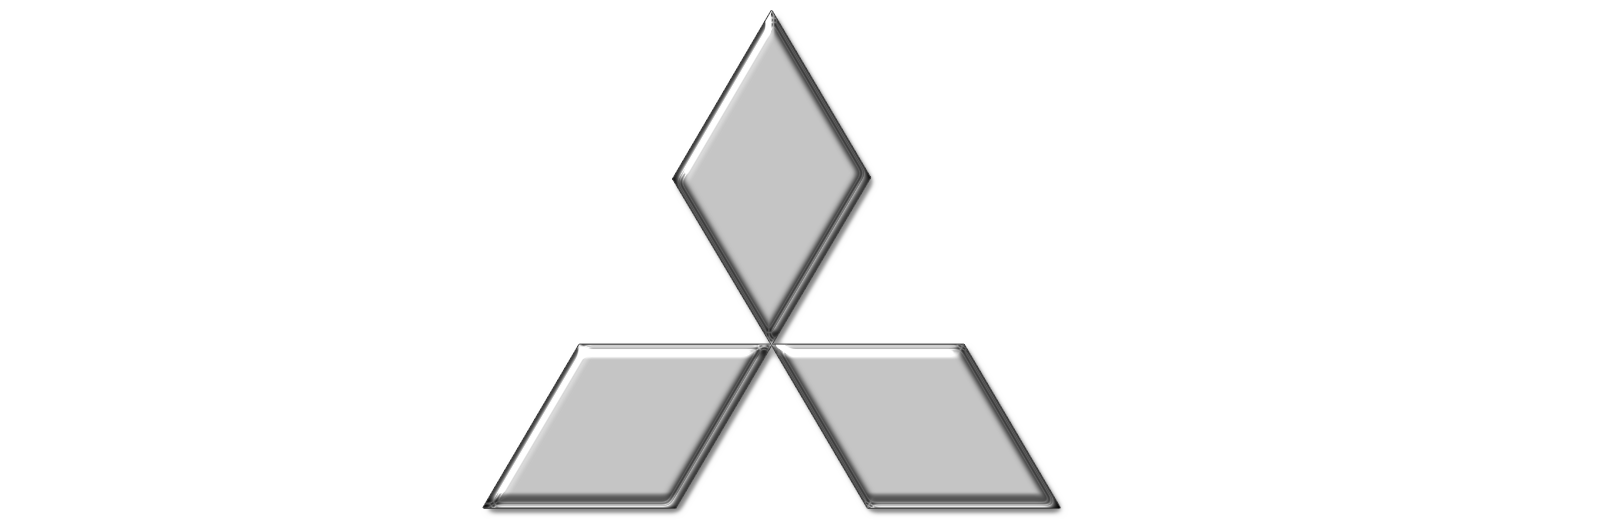 Mitsubishi Logo Meaning And History Latest Models World Cars Brands